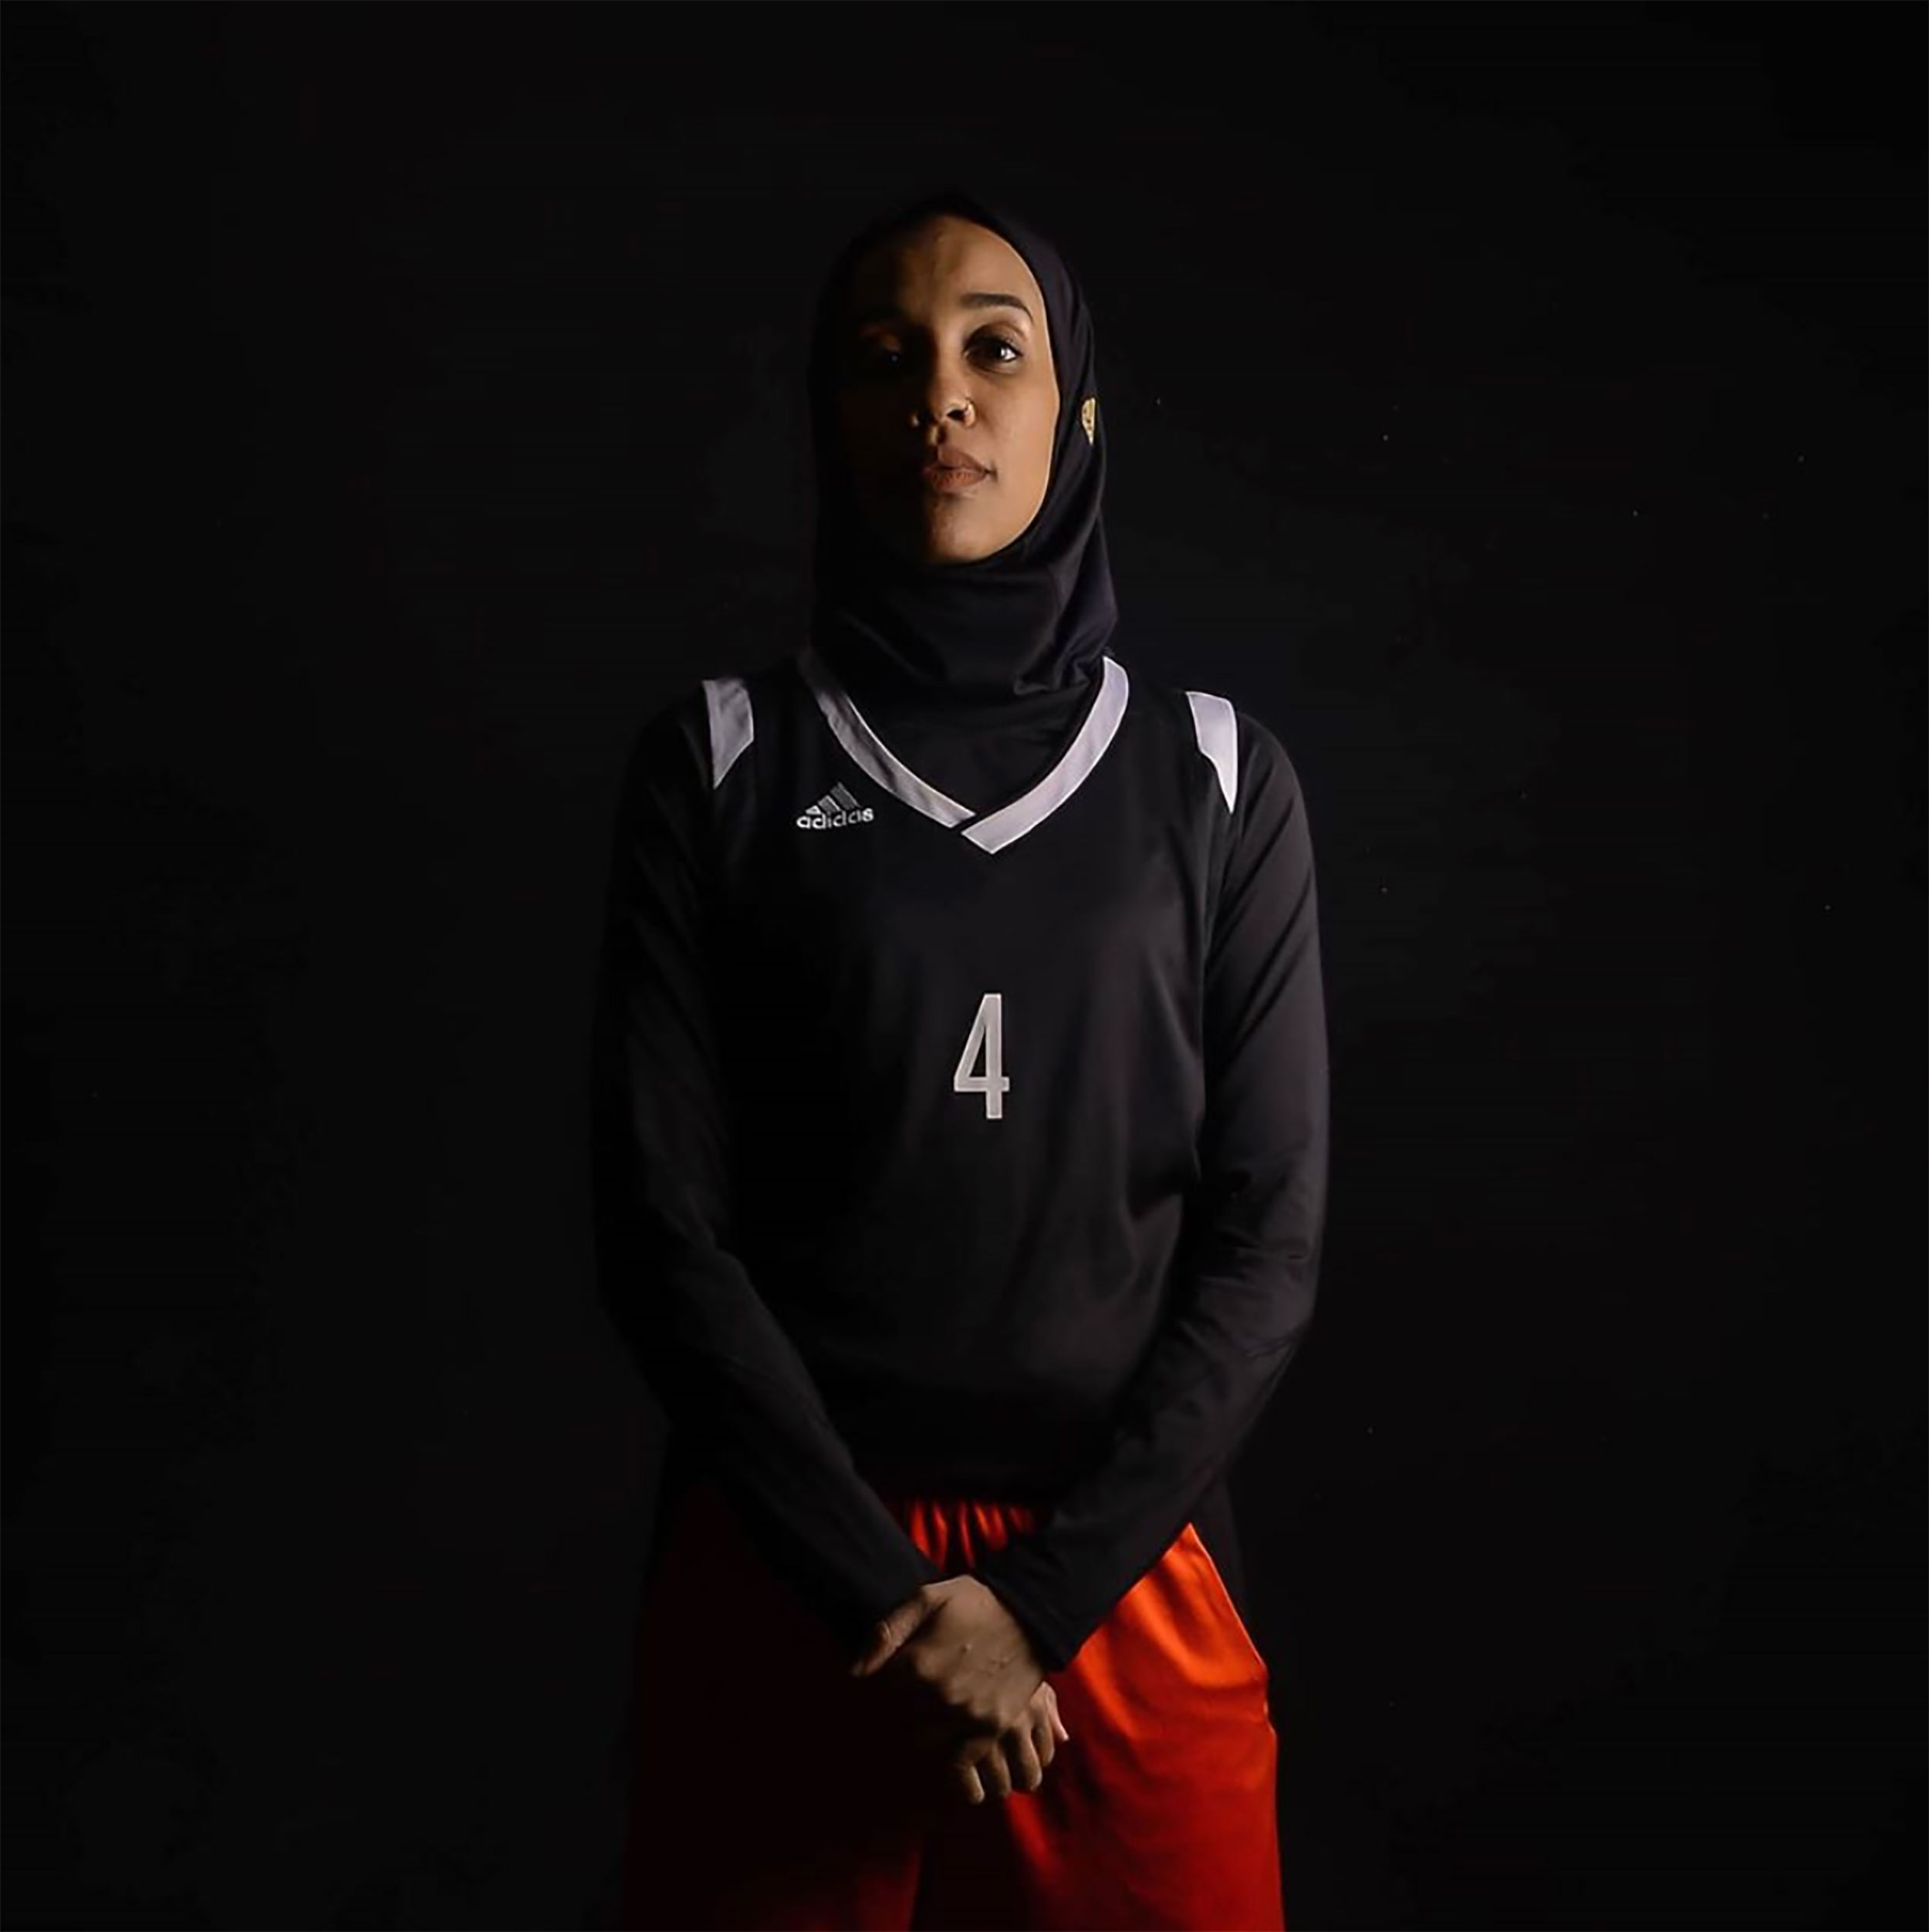 'Queen of the ball' Asma Elbadawi lives out hoop dream to defy skeptics